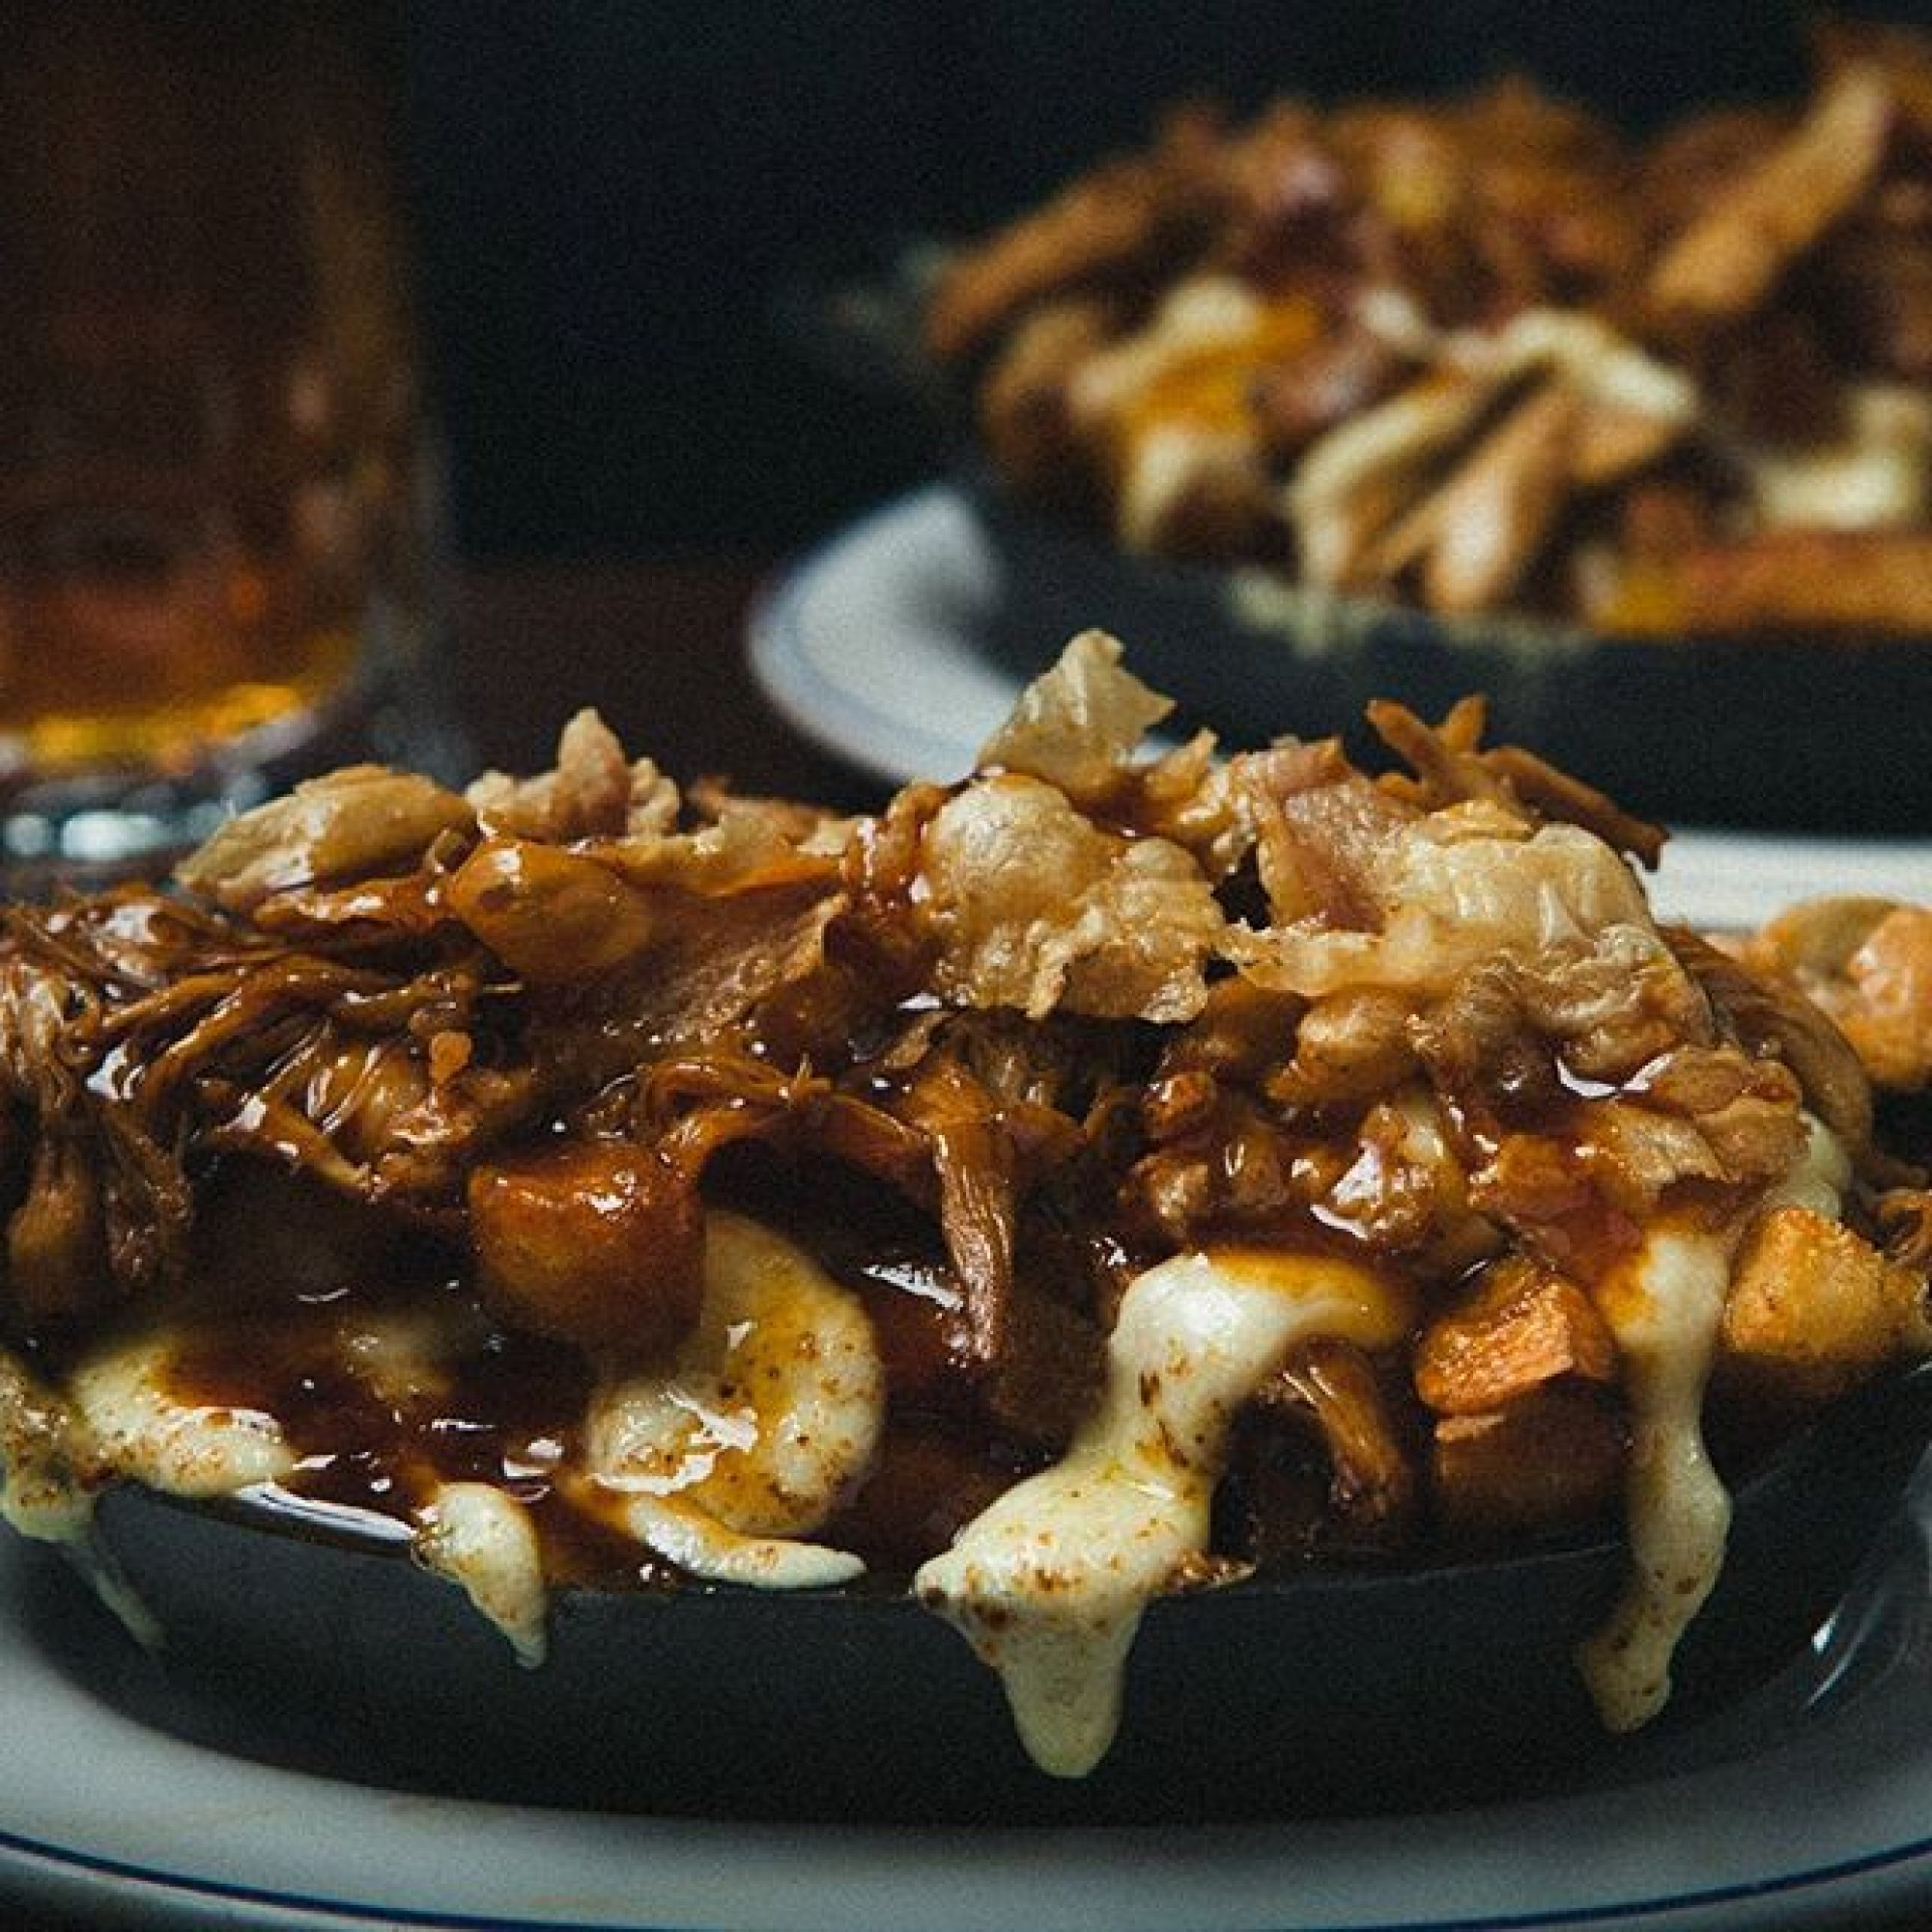 11 mouthwatering photos of poutine that are frankly pornographic